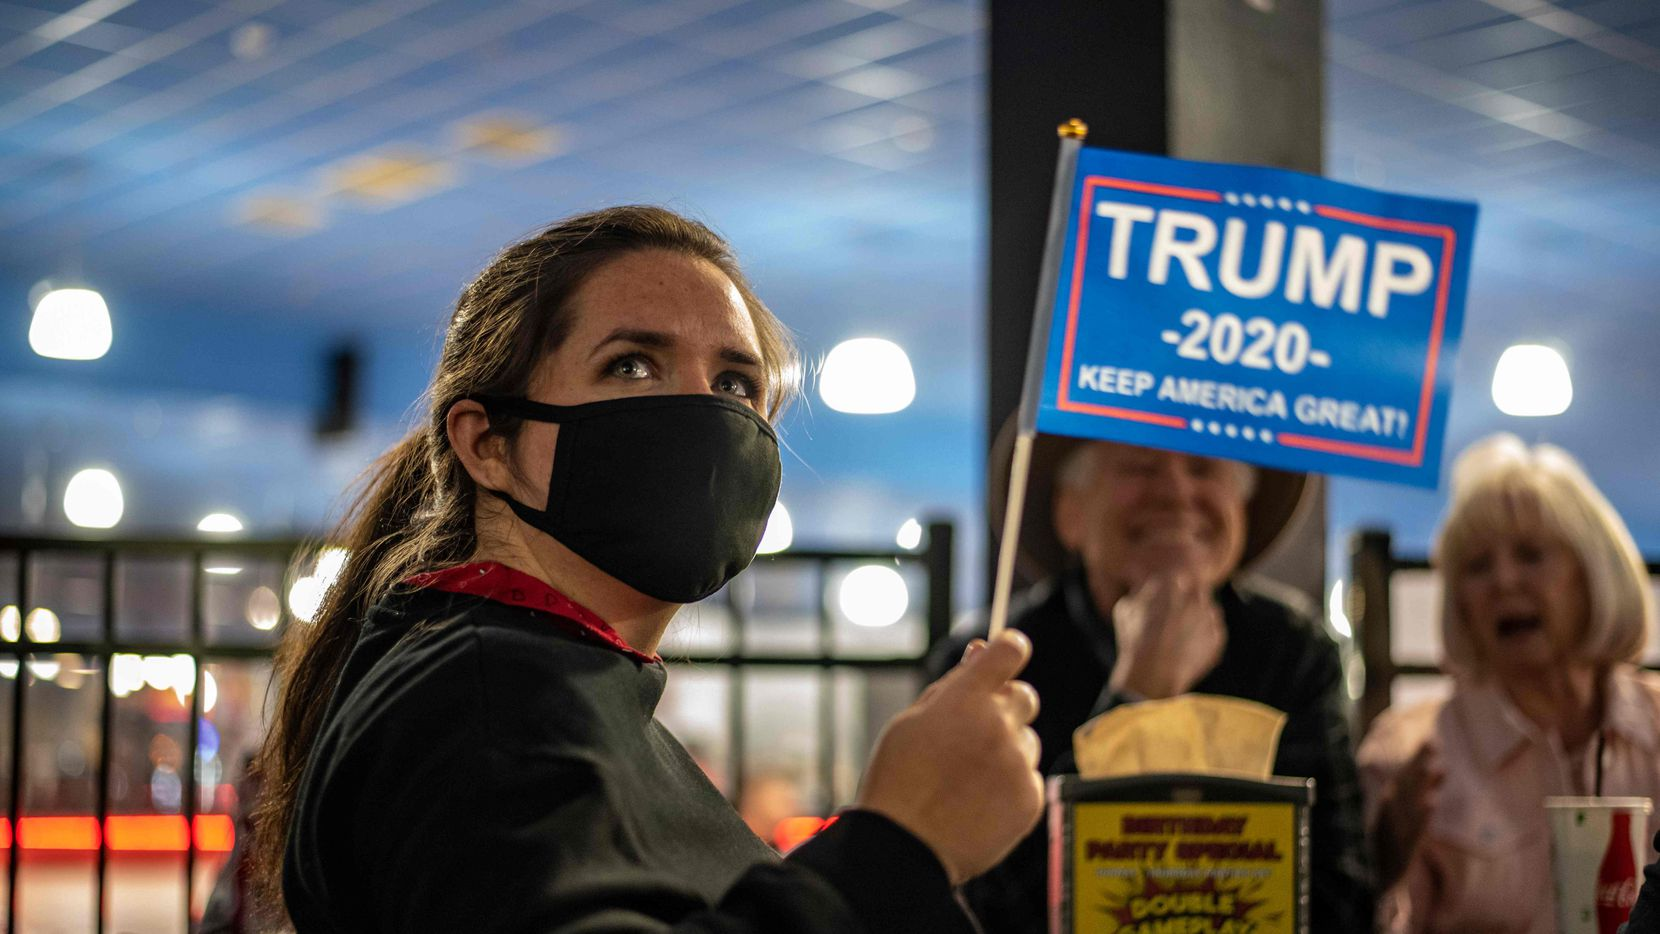 An attendee at a watch party for Republicans waves a Trump 2020 flag on election day, November 3, 2020 in Austin, Texas.